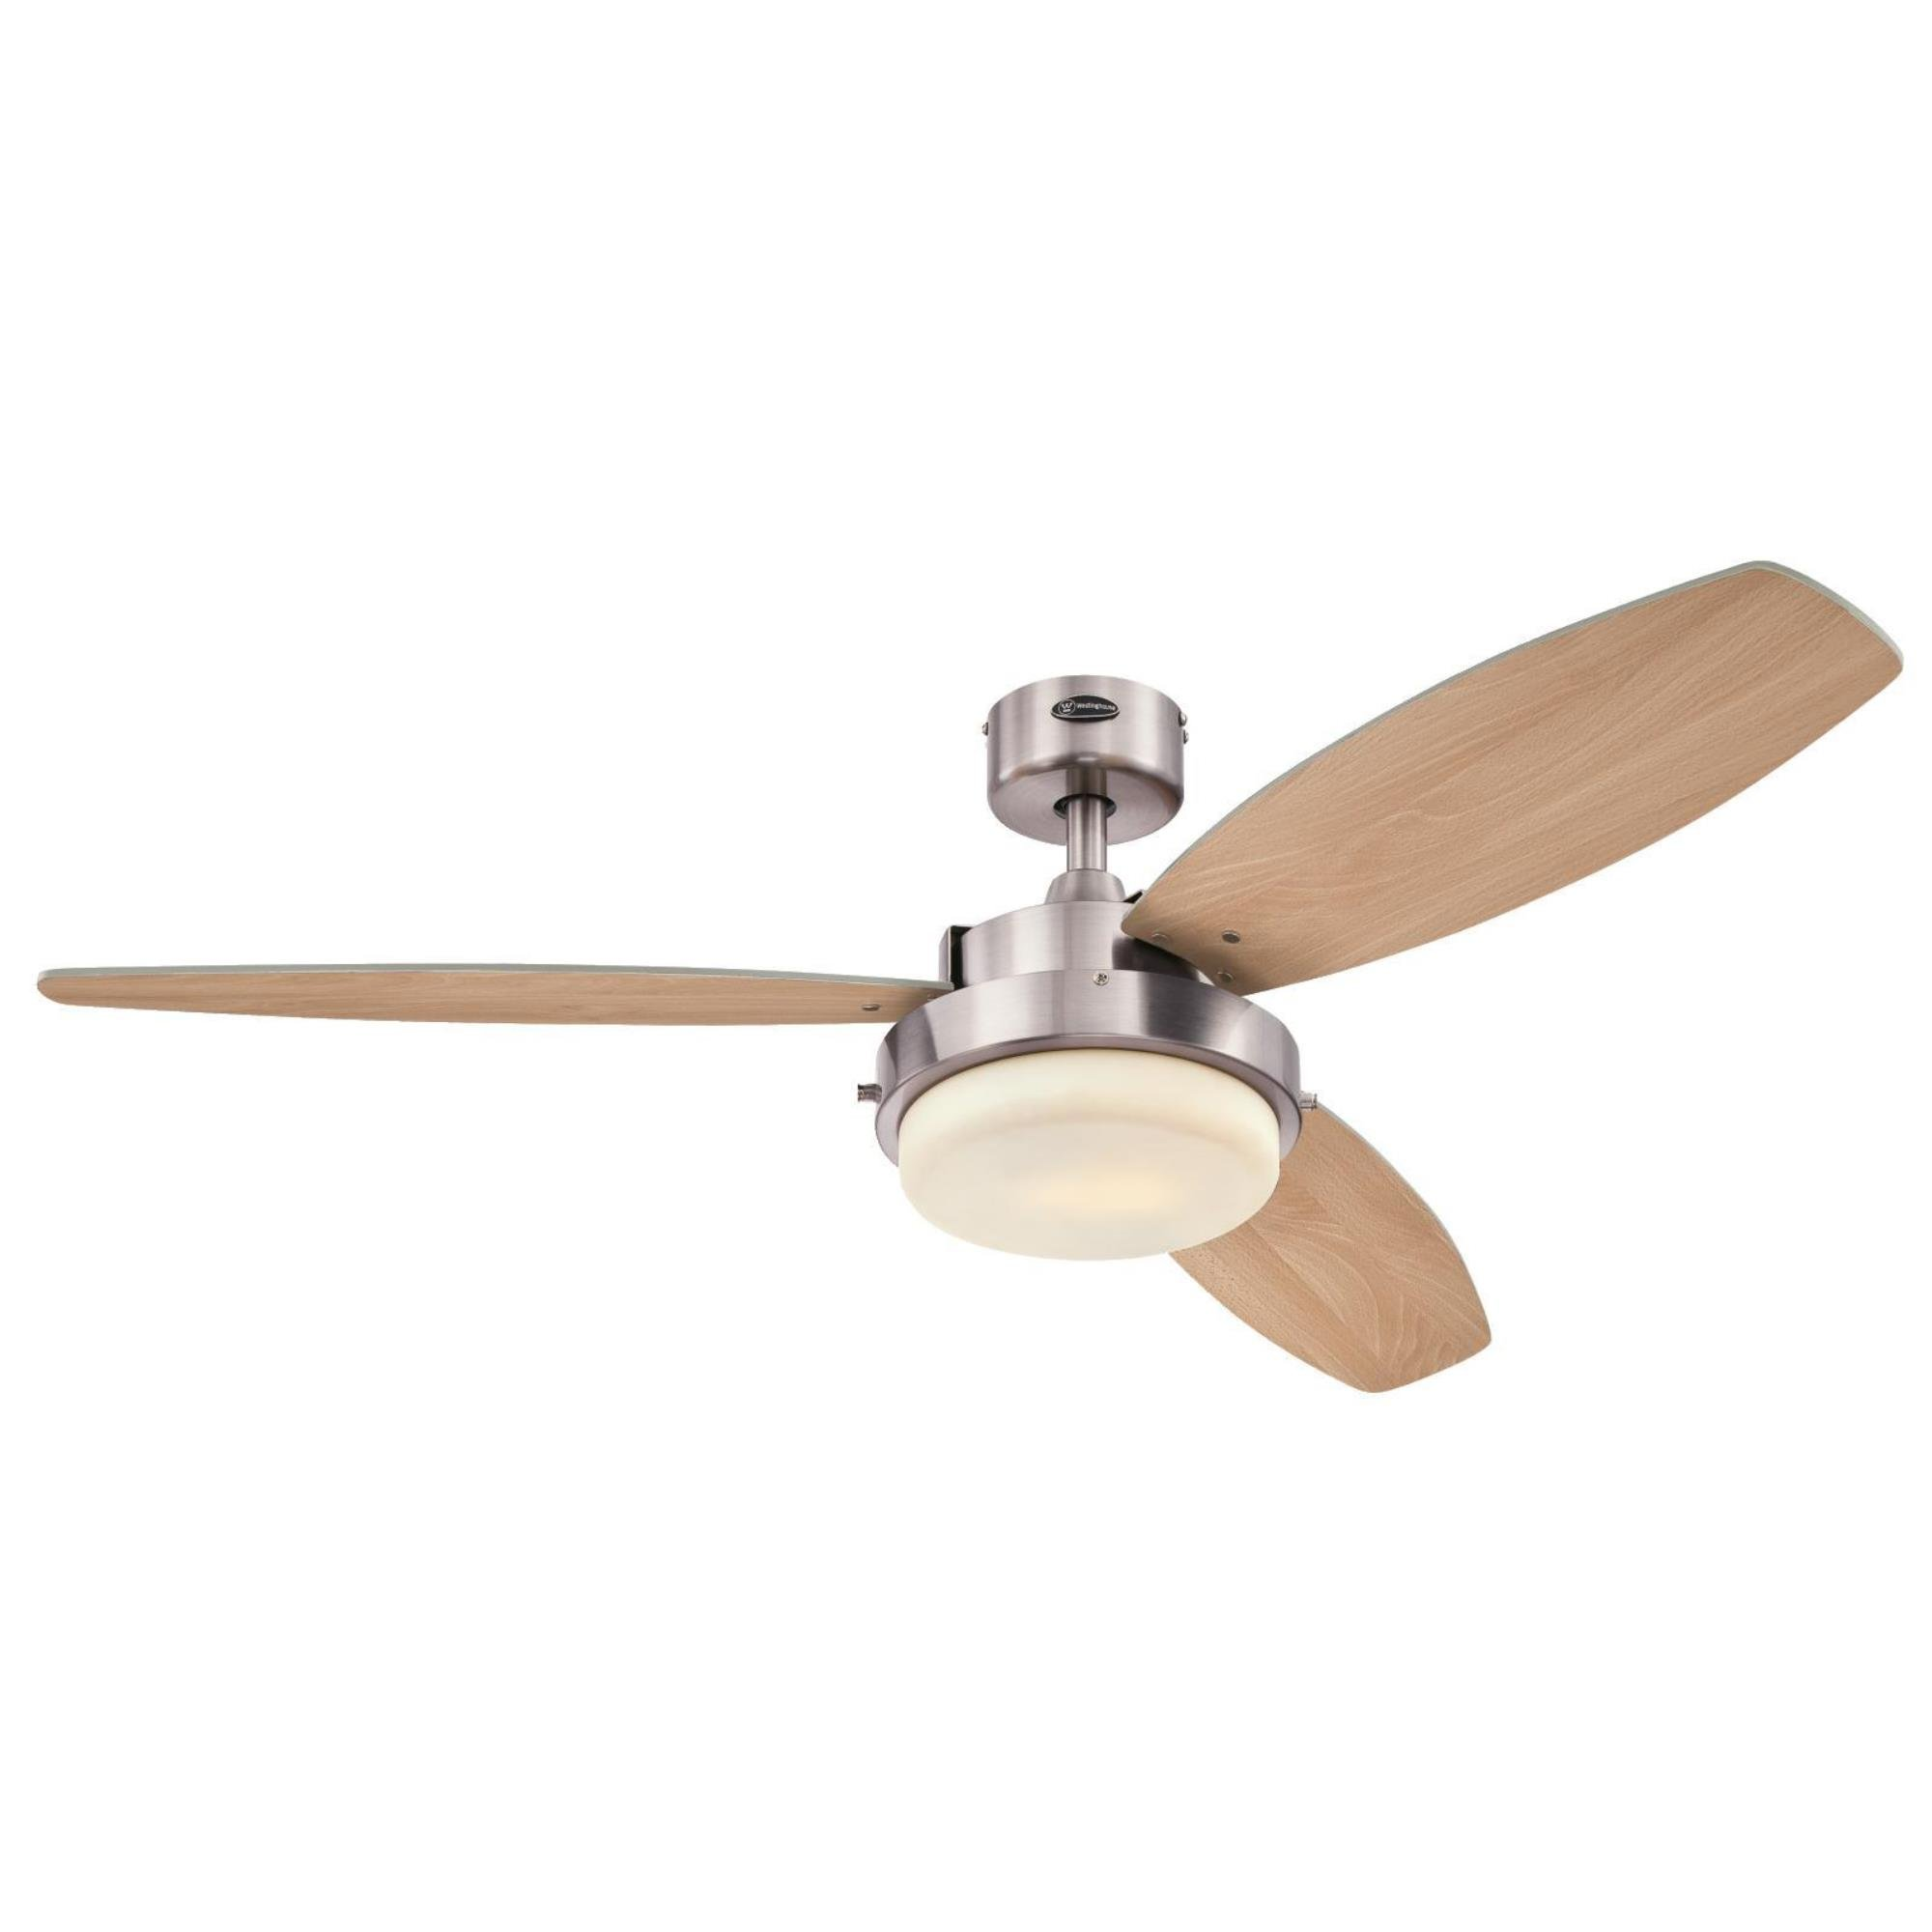 Westinghouse Lighting 7209000 Alloy 52-inch Brushed Nickel Indoor Ceiling Fan, LED Light Kit with Opal Frosted Glass